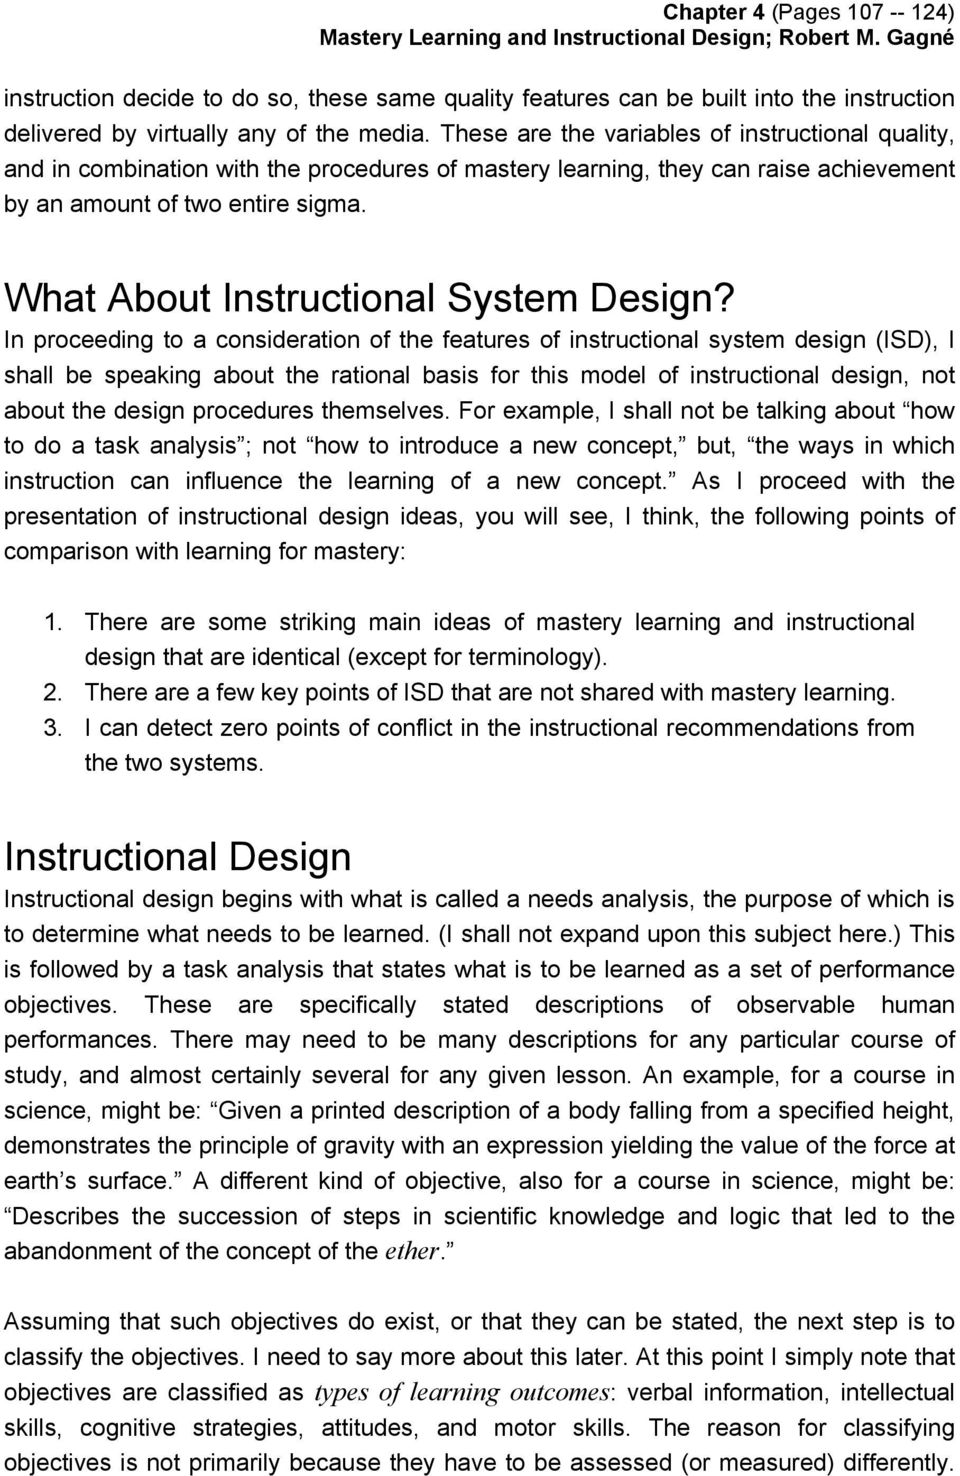 What About Instructional System Design?